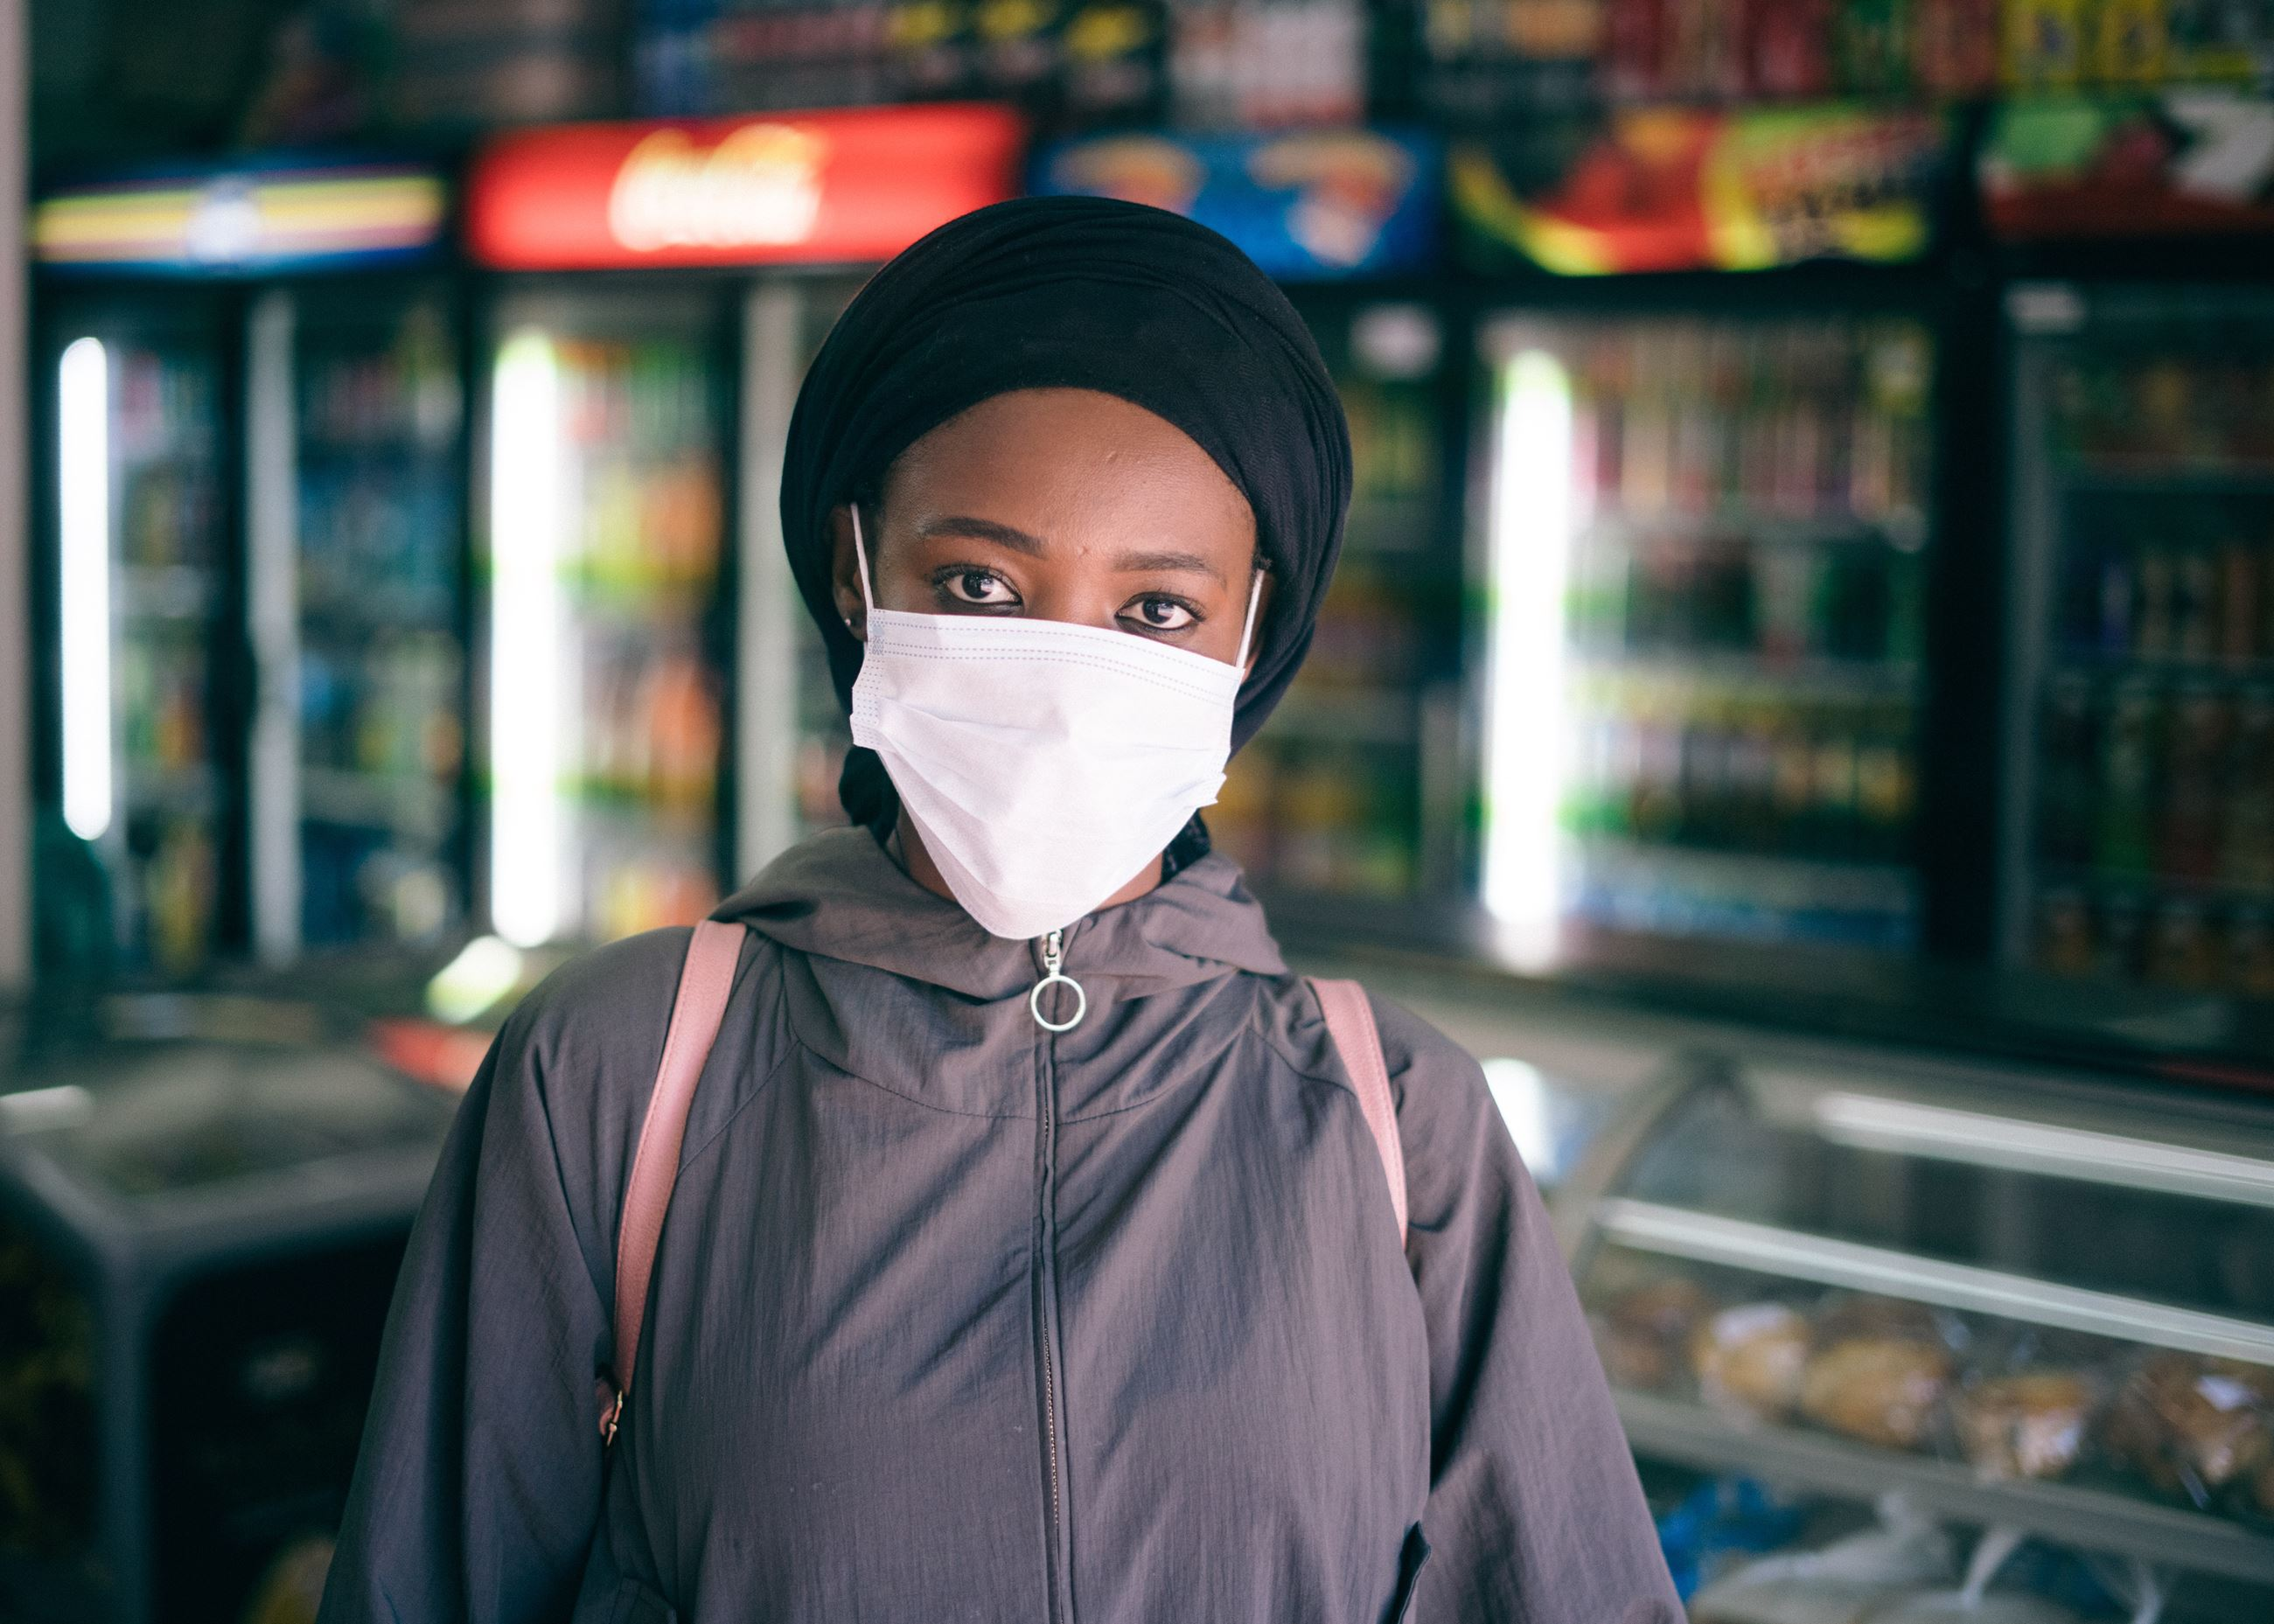 A woman wears a protective mask in store